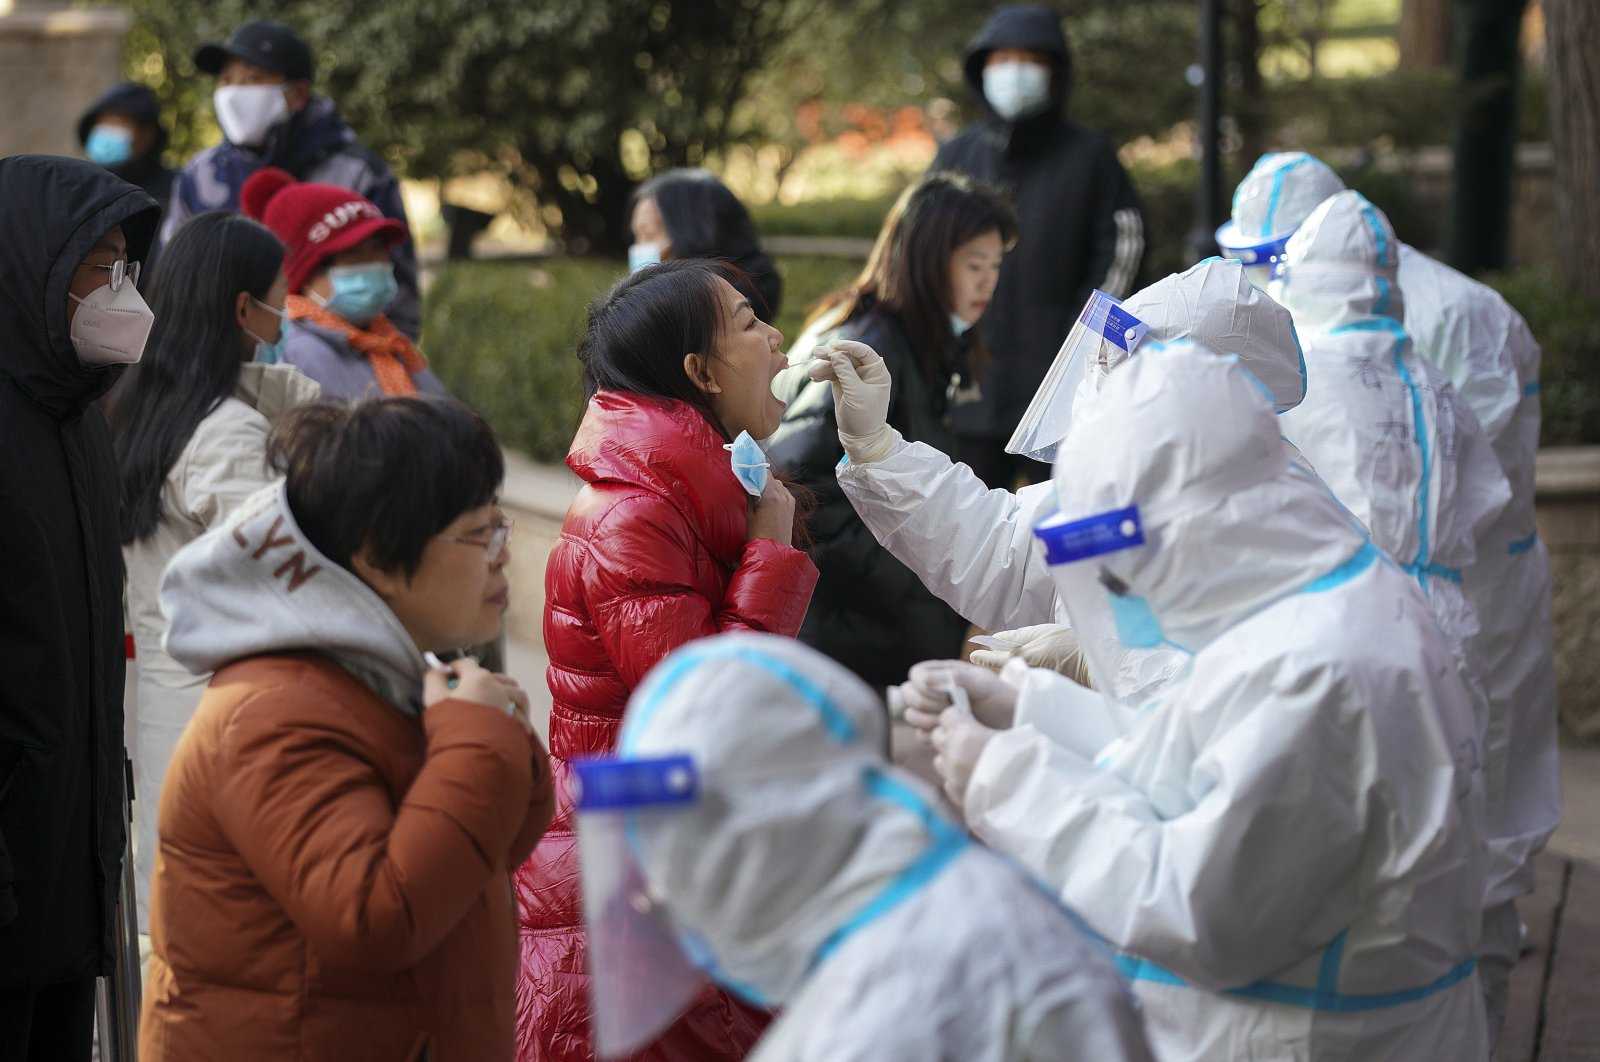 In this photo released by Xinhua News Agency, medical workers in protective suits take swabs from residents near a residential area in Shijiazhuang in north China's Hebei province, Jan. 6, 2021. (AP Photo)